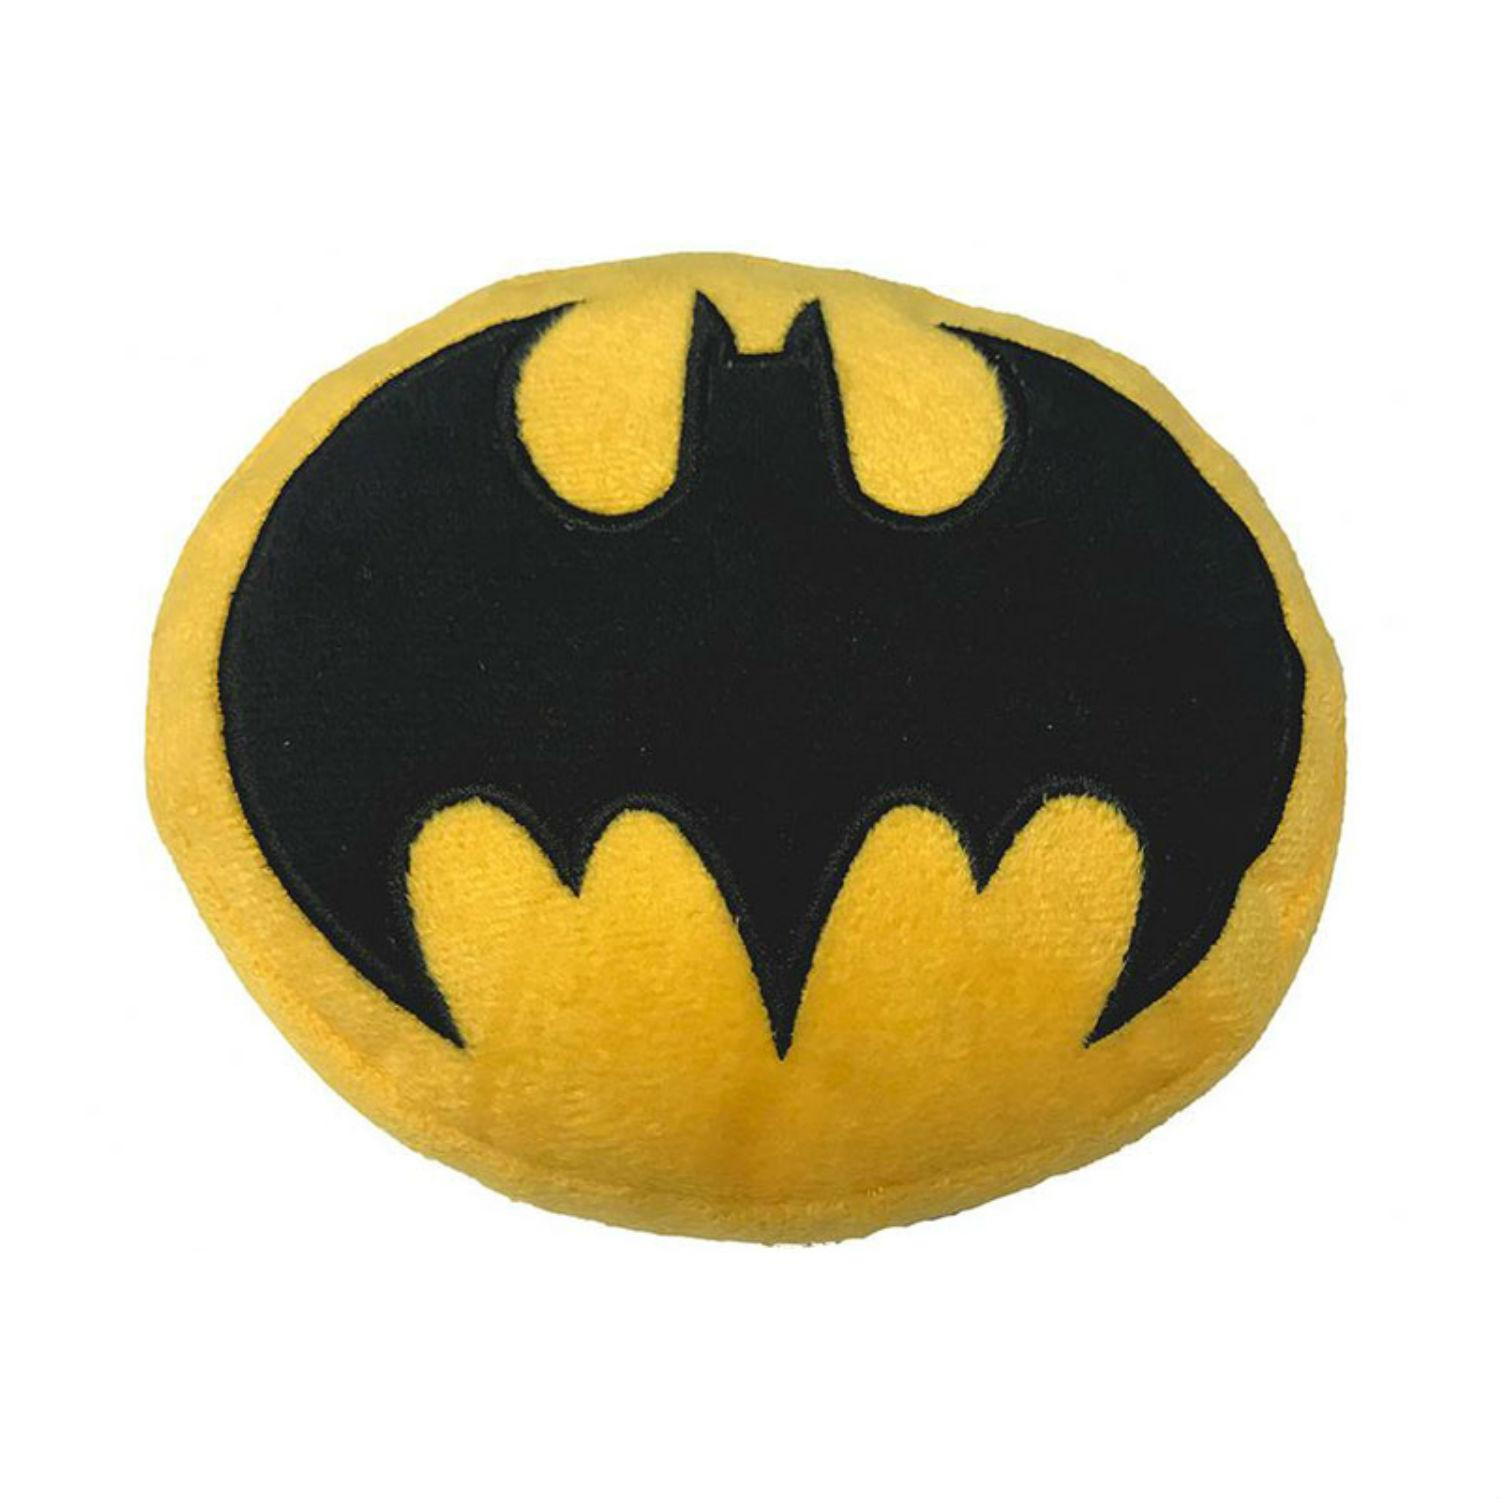 Batman Squeaky Plush Dog Toy by Buckle-Down